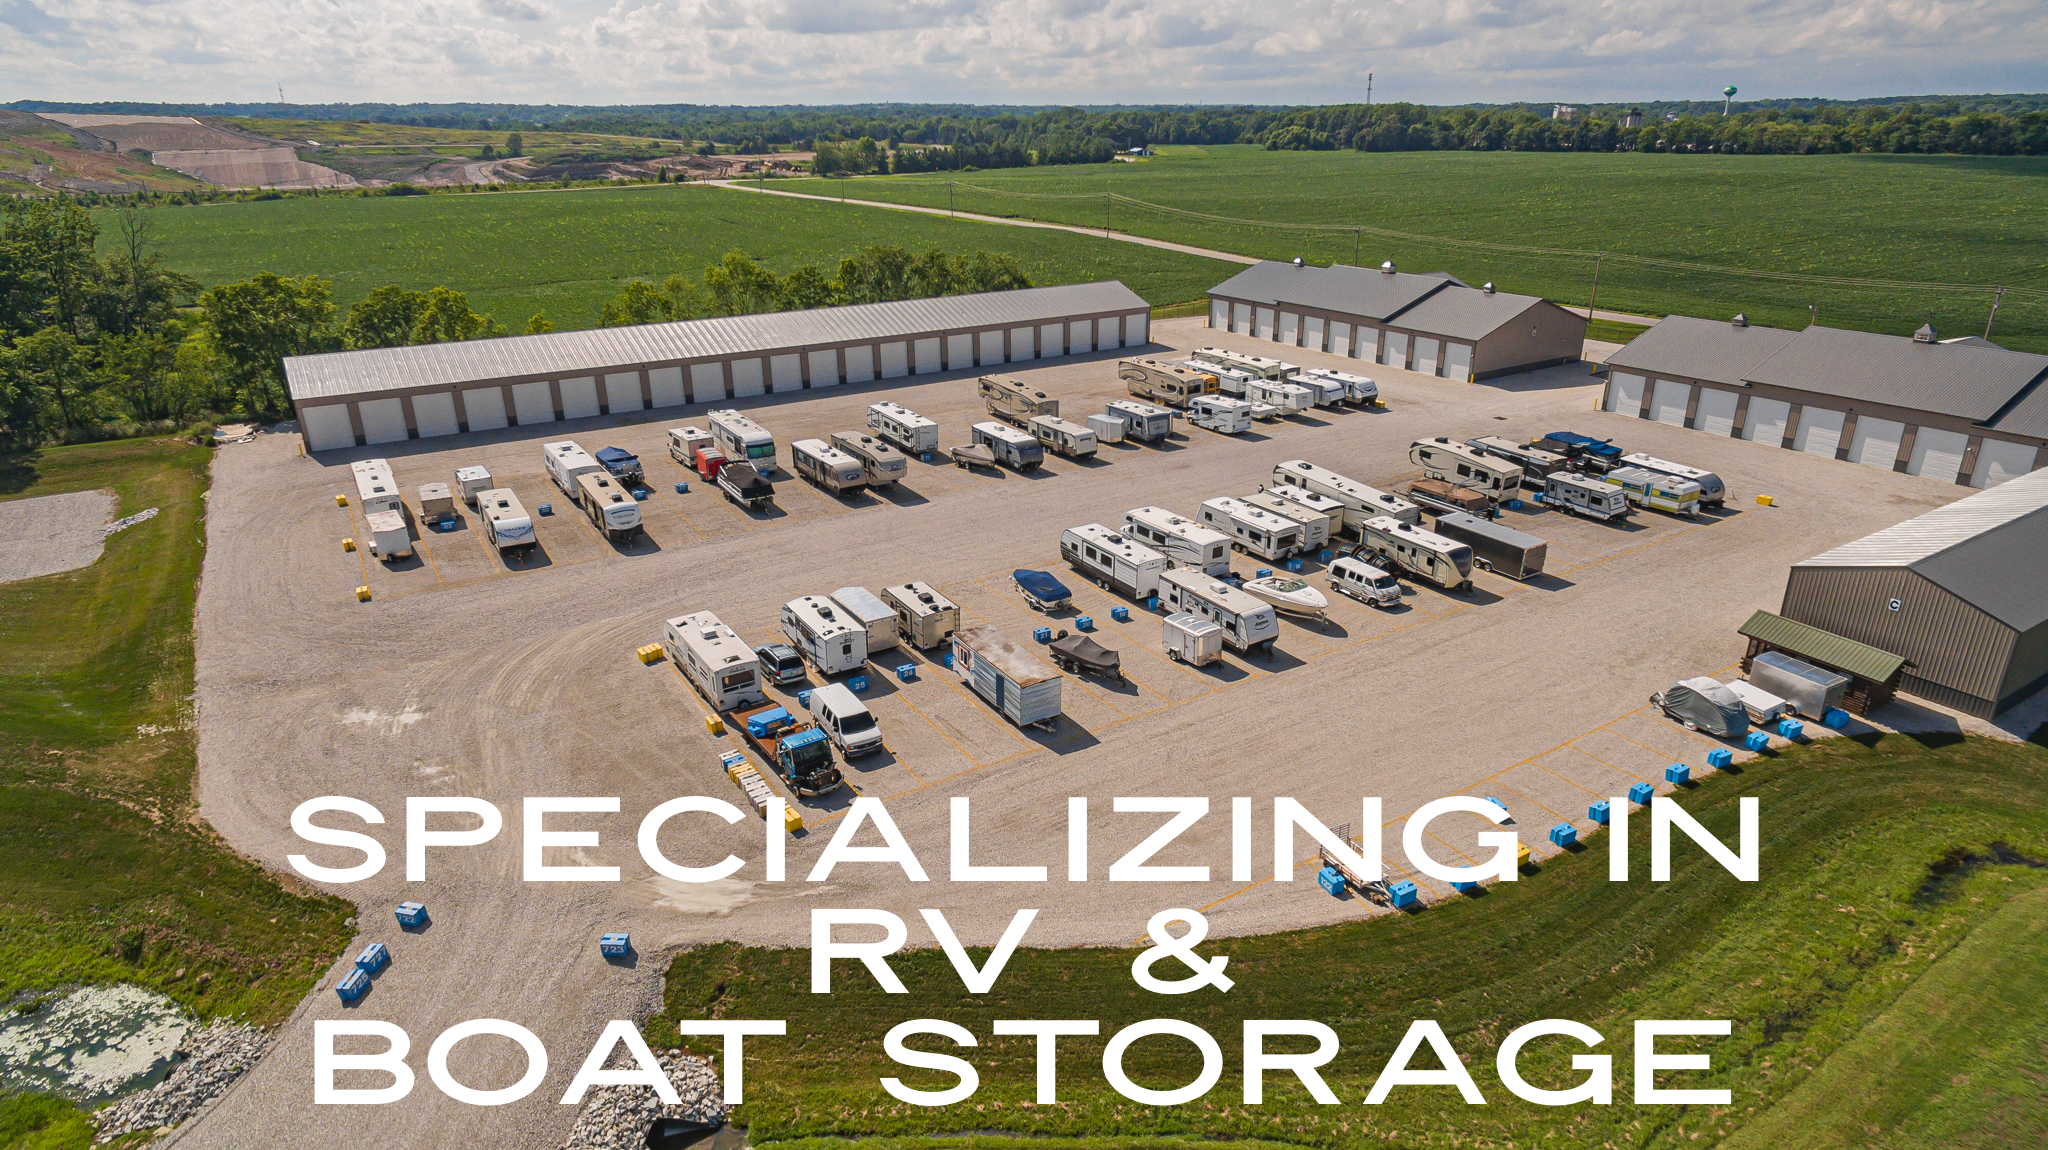 Specializing in RV and boat storage